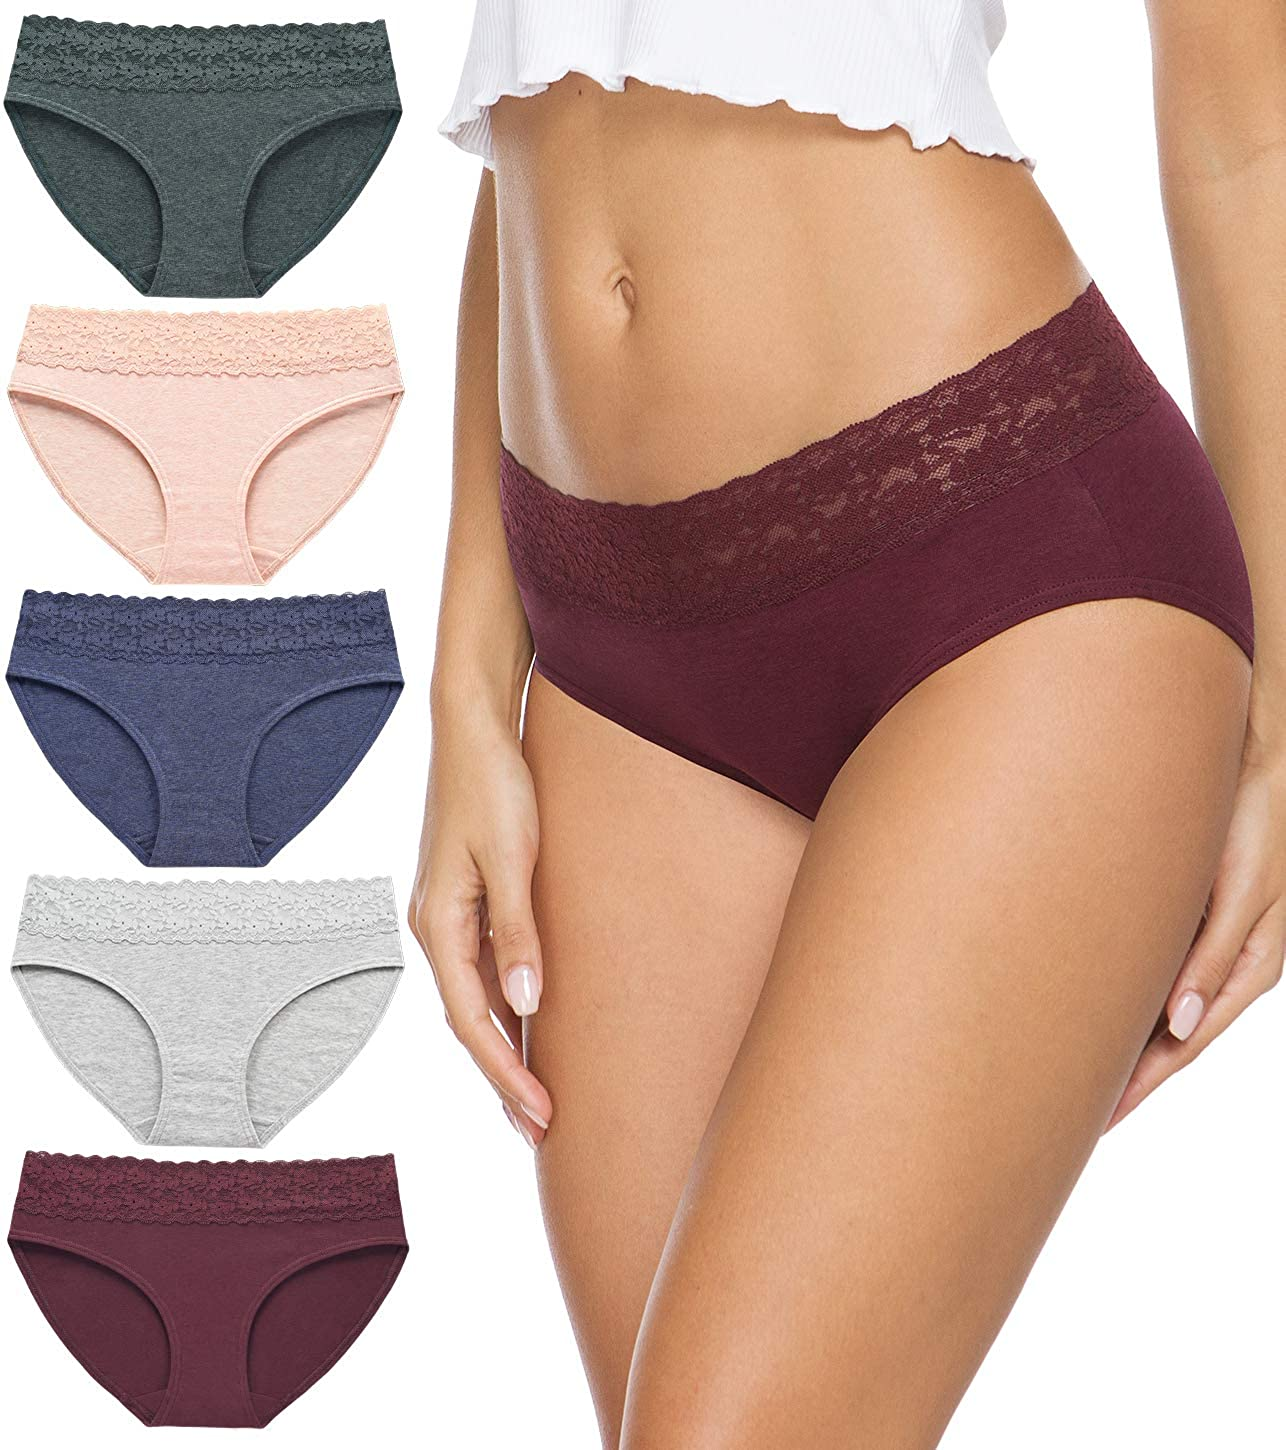 Cotton Underwear Columbus Mall for specialty shop Women Bikini Hipster Panties Underpants Lac